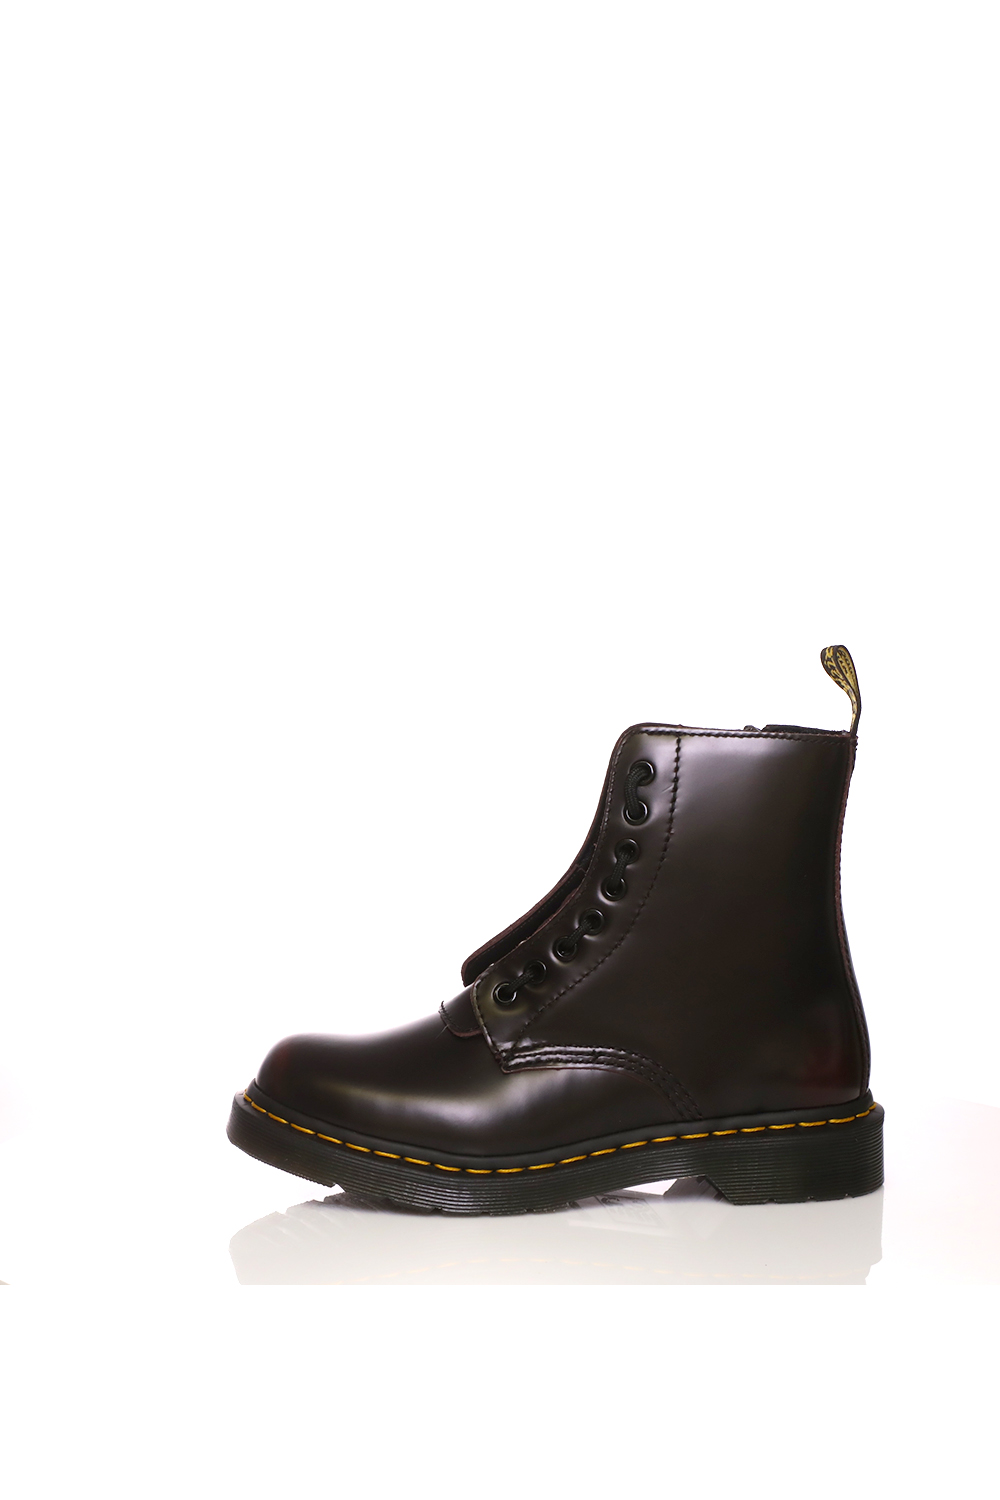 DR.MARTENS – Γυναικεία μποτάκια Pascal Frnt Zip 8 Eye Boot σκούρο μπορντό